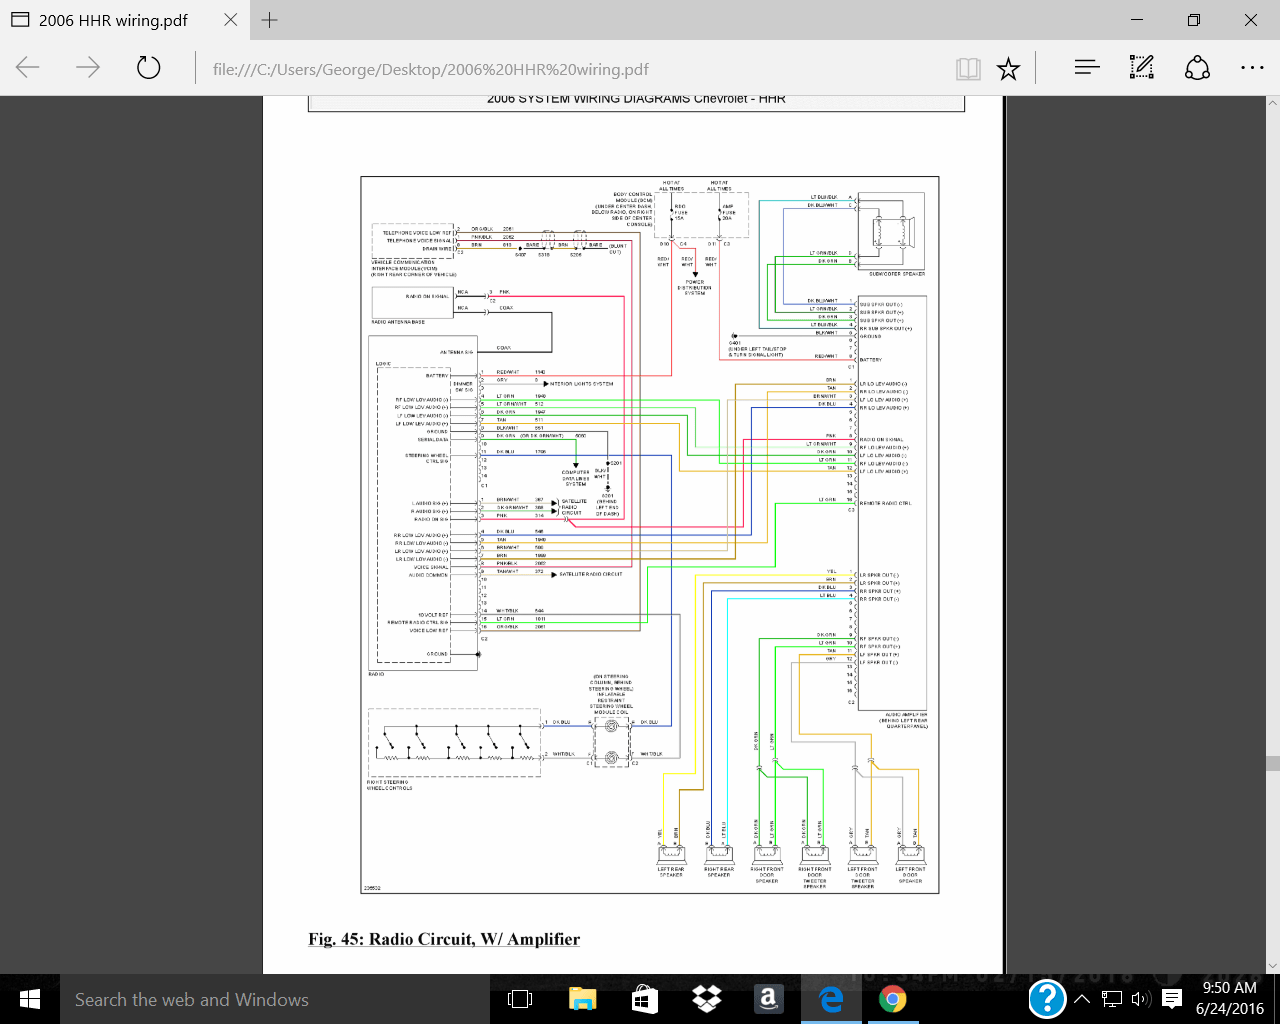 Rls 12v Relay Wiring Diagram 125 Denso Colorful Oxygen Sensor Wire Colors Photos Electrical Basic